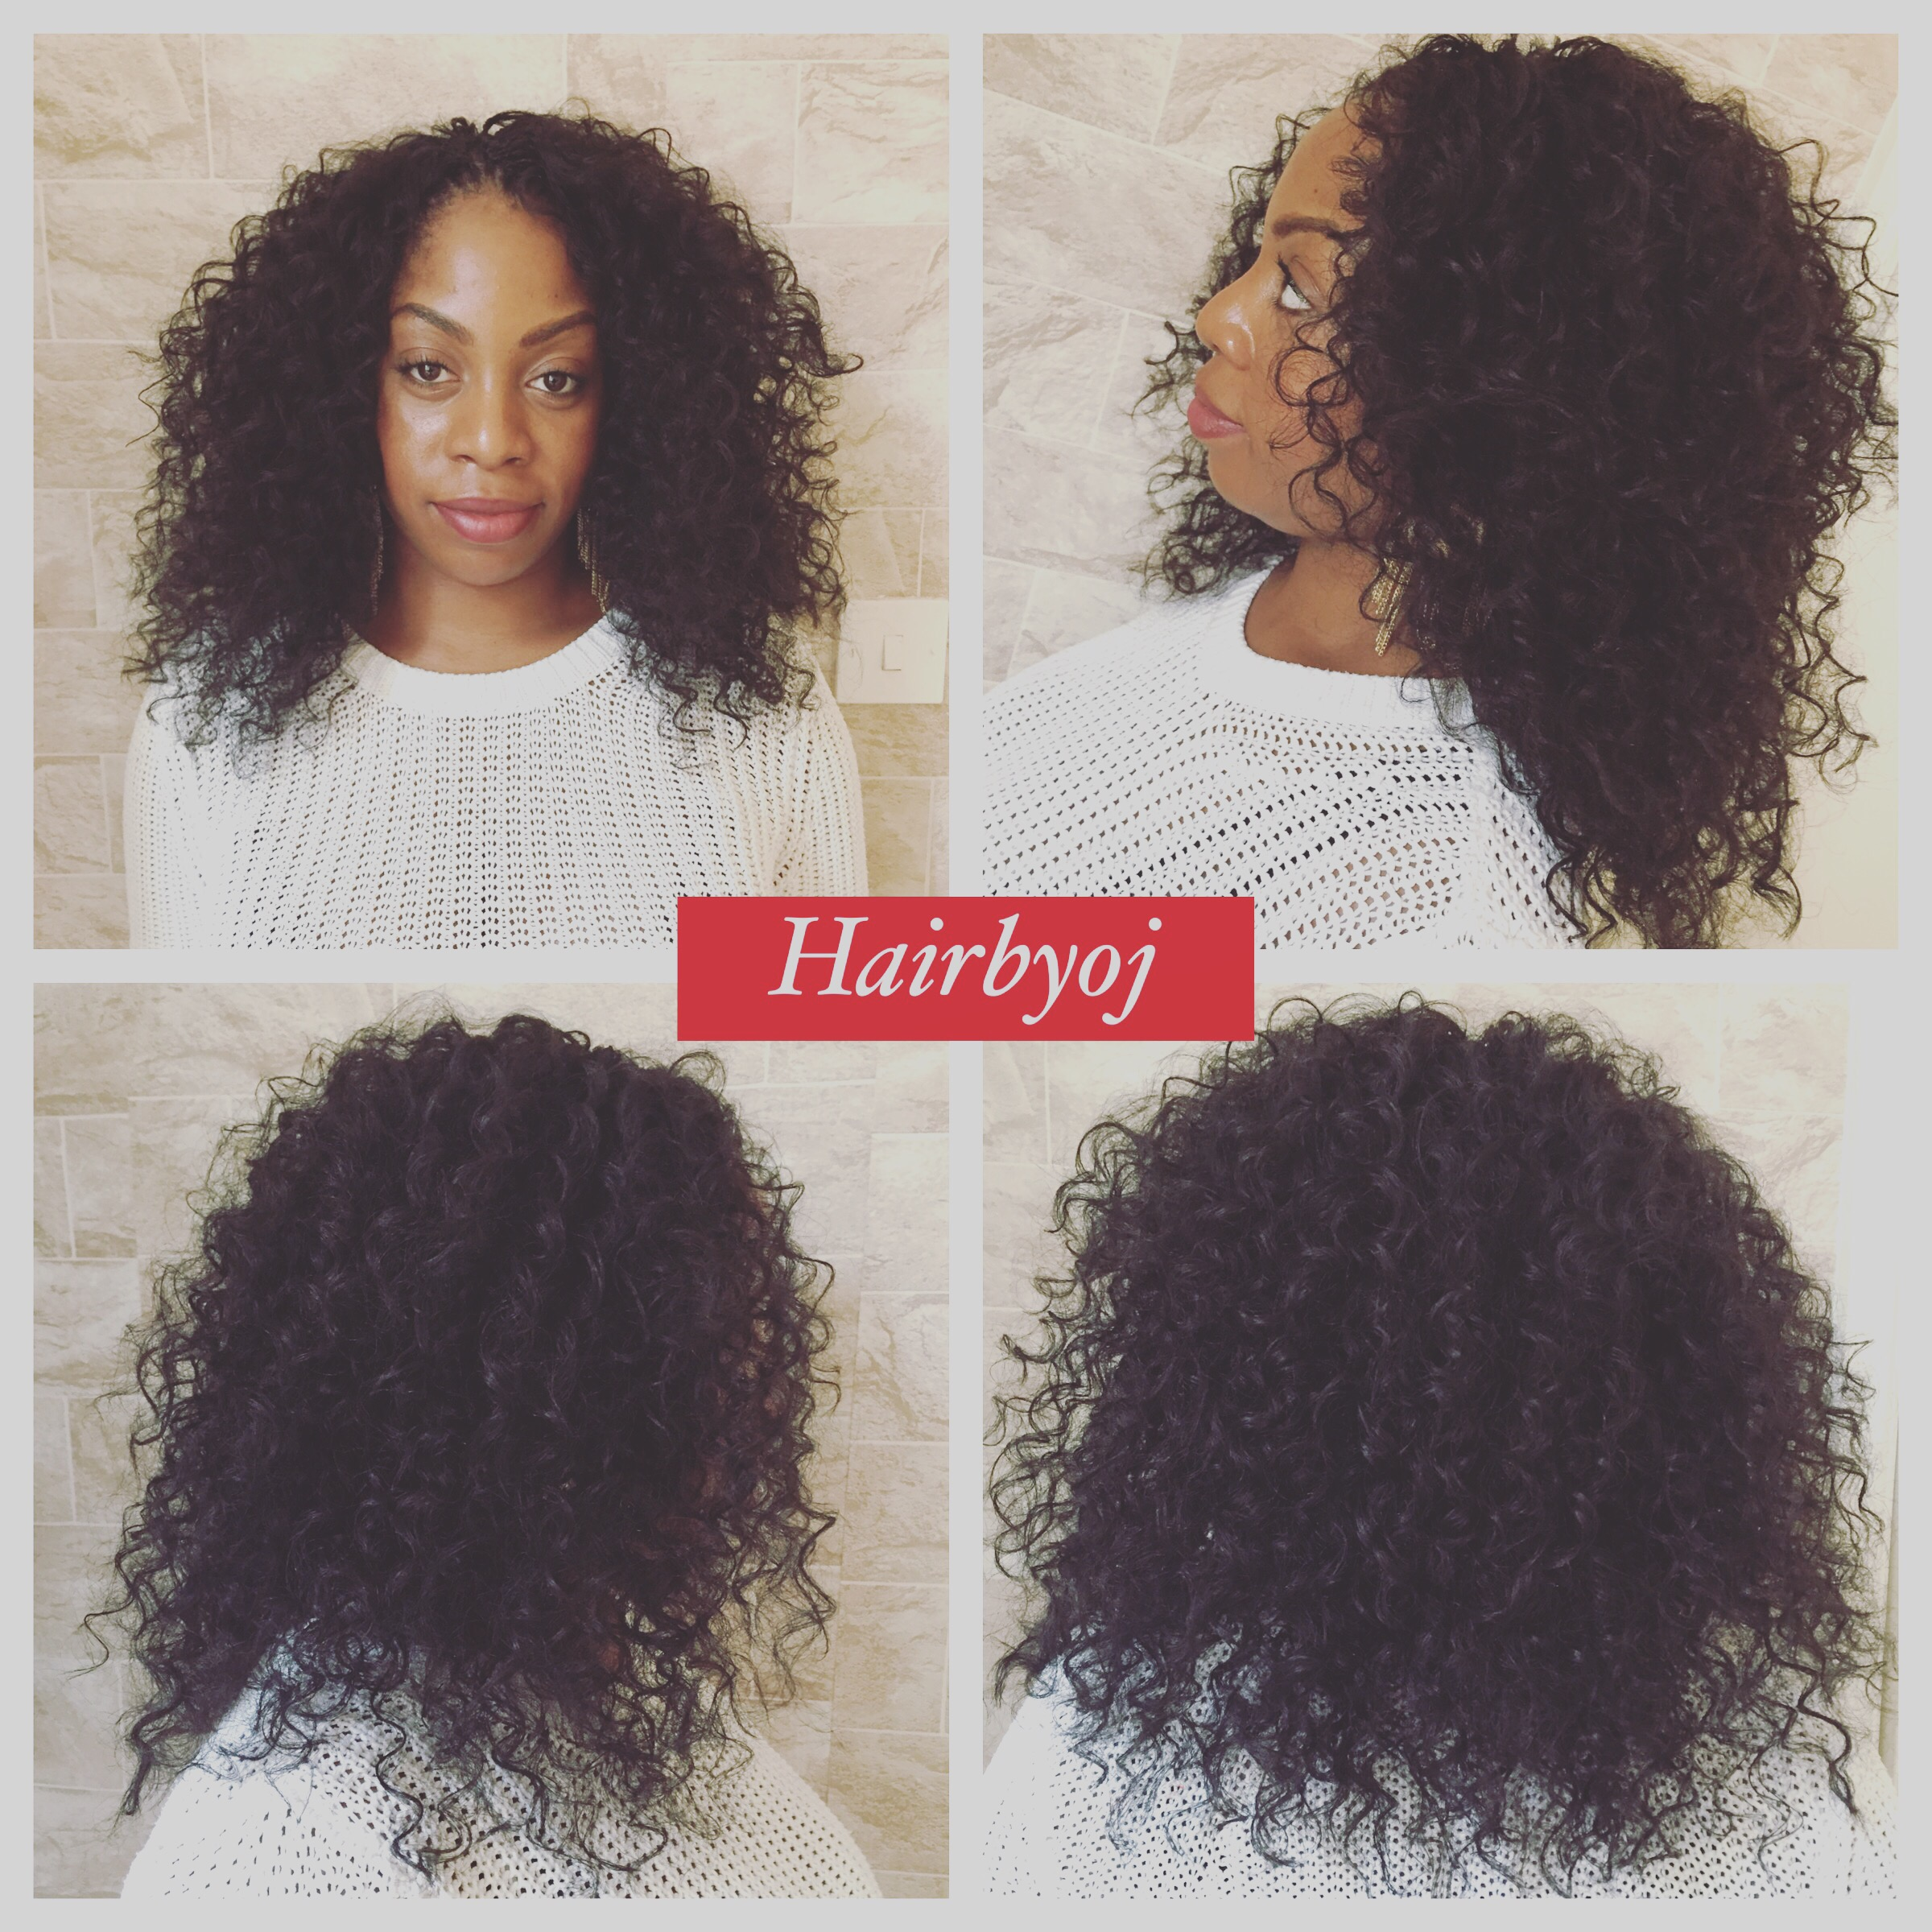 Crochet Hair Leave Out : Crochet Braids With Leave Out Shoulder length curly crochet braids ...